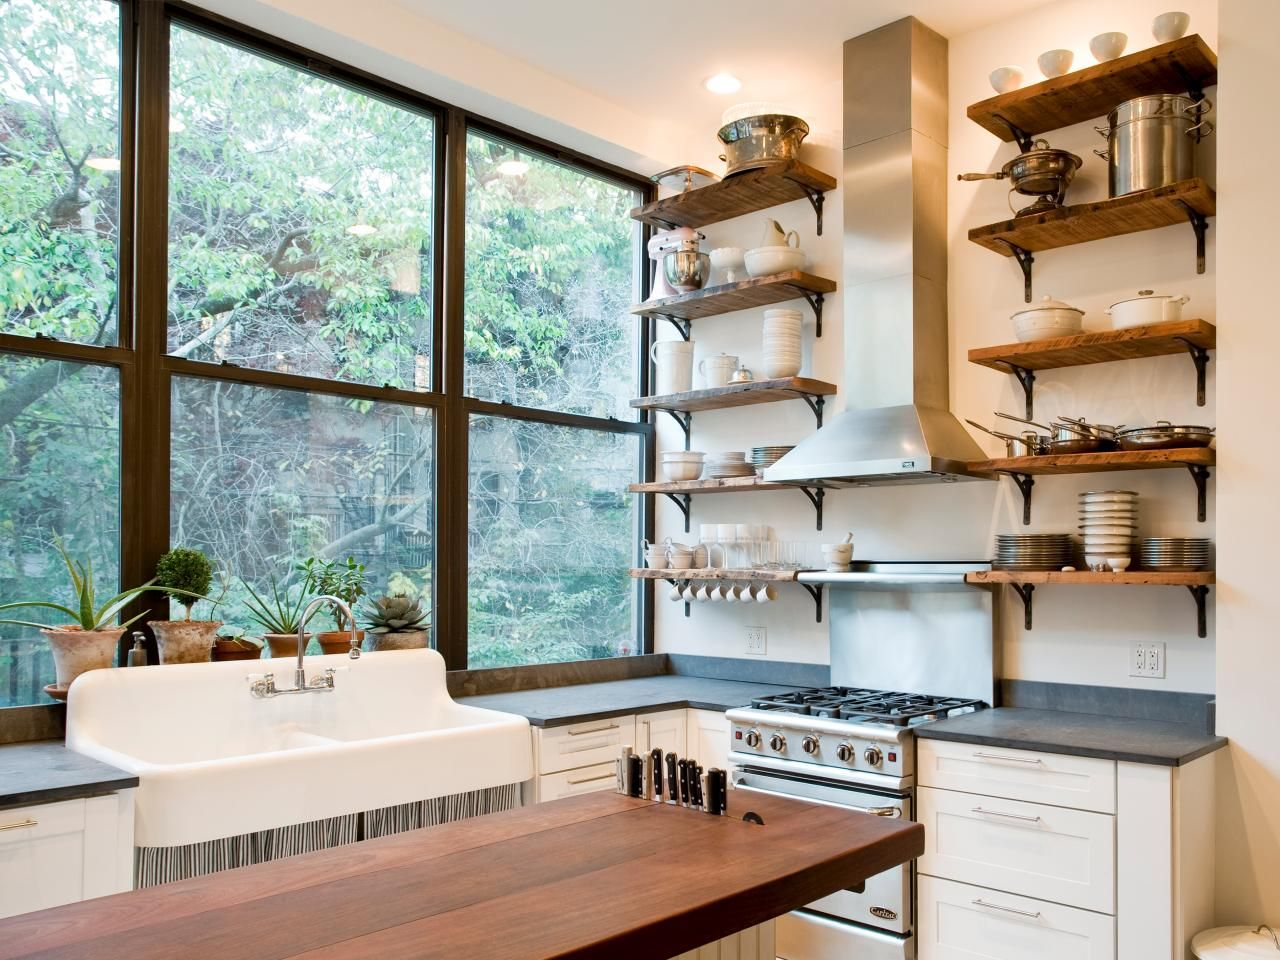 Kitchen Storage Ideas | Block island, Open shelves and Butcher blocks